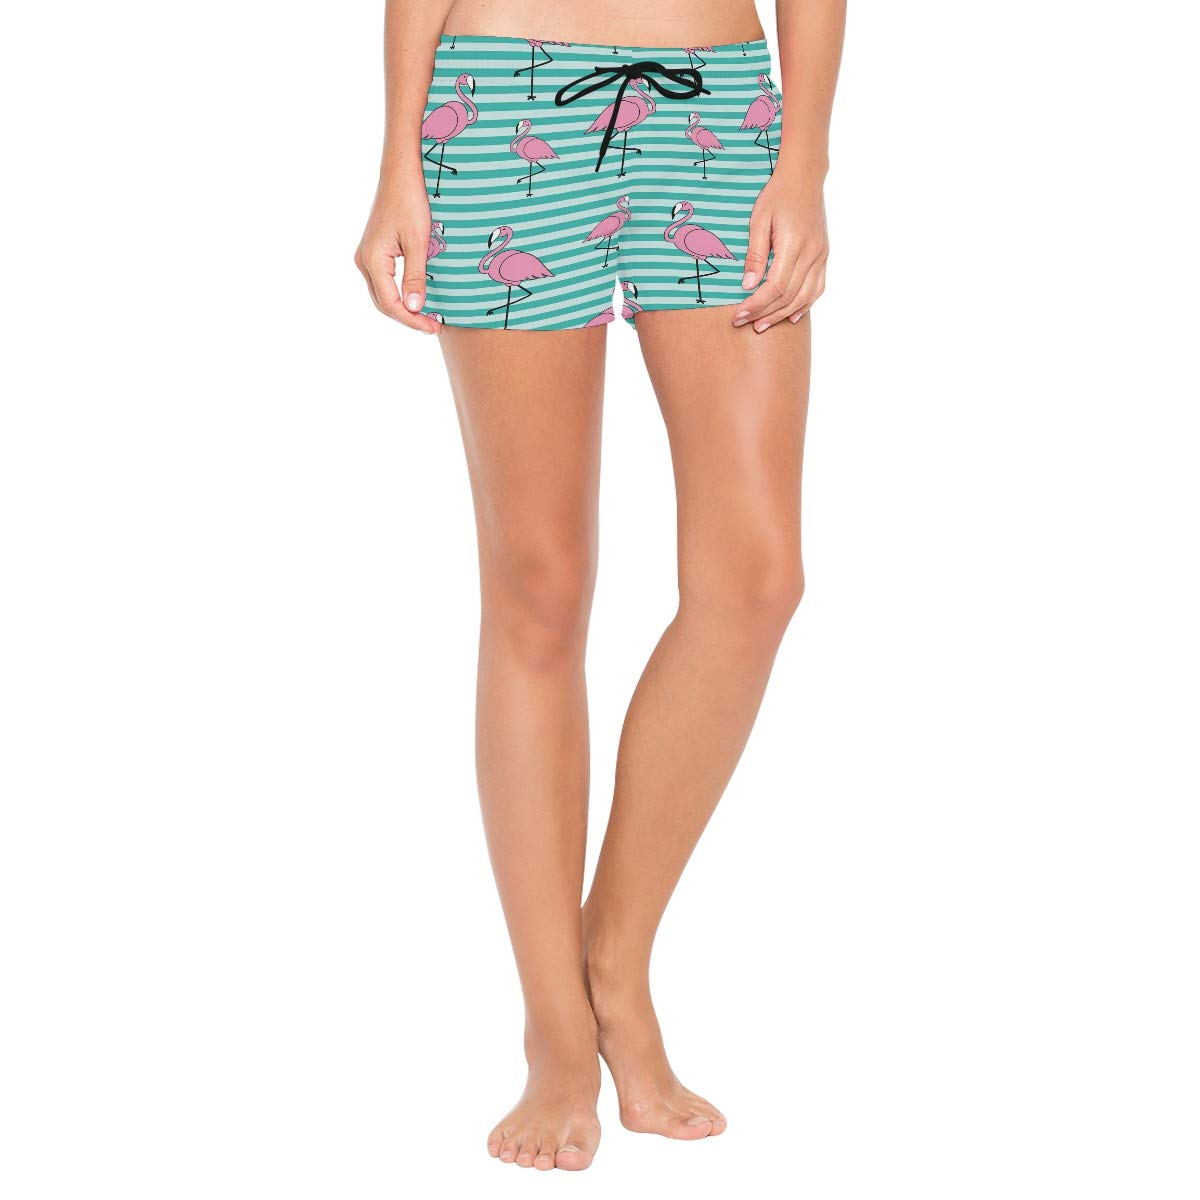 CENHOME Women Swim Trunks Pink Flamingo Pattern Blue Stripes Beach Board Shorts